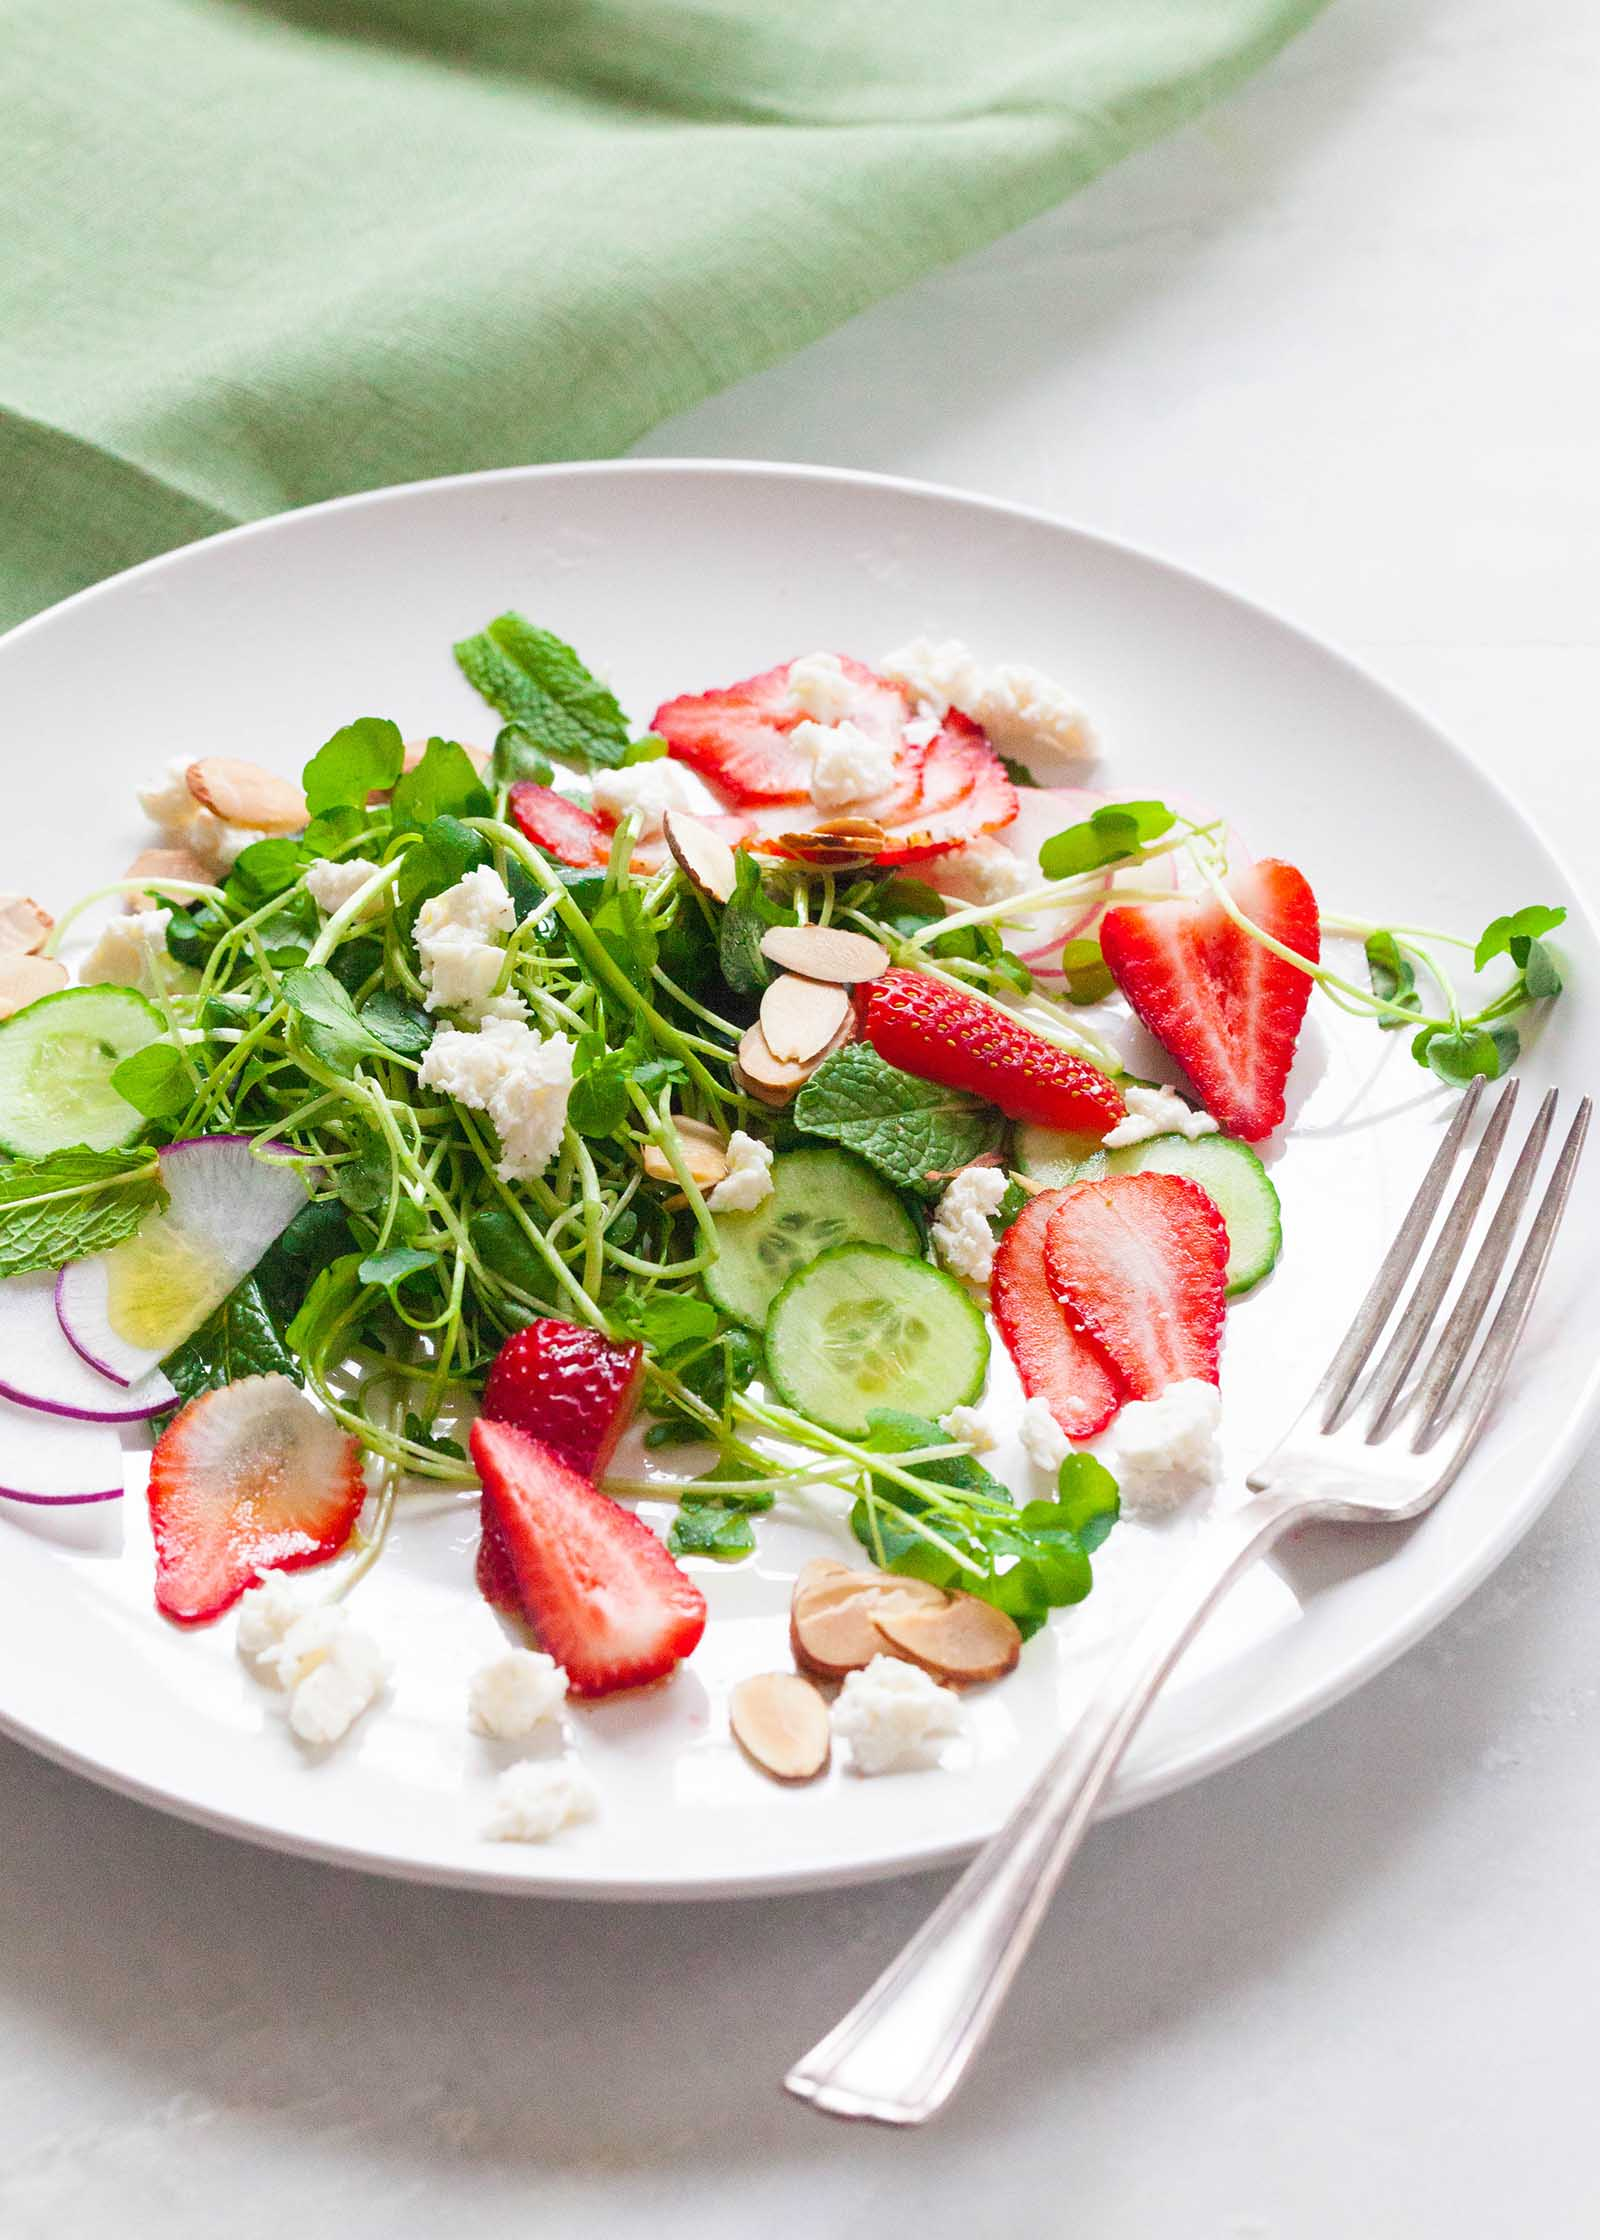 lettuce salad with strawberries - 736×1030